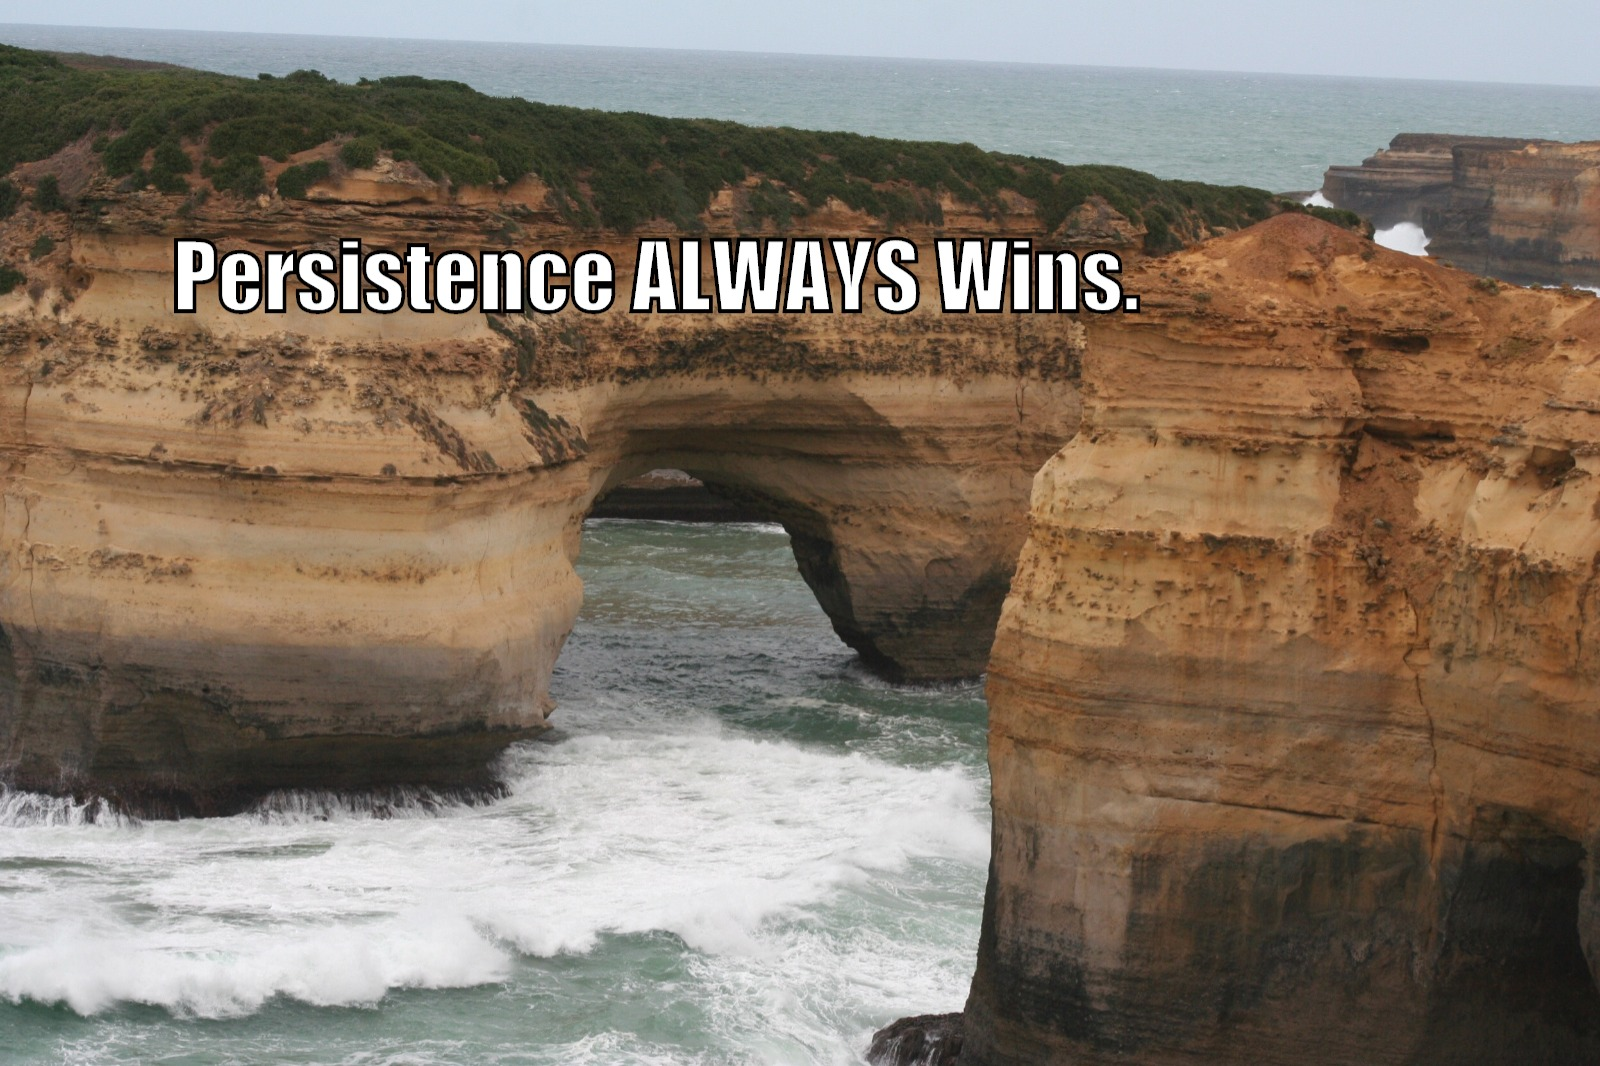 Motivational quote: Persistence always wins.